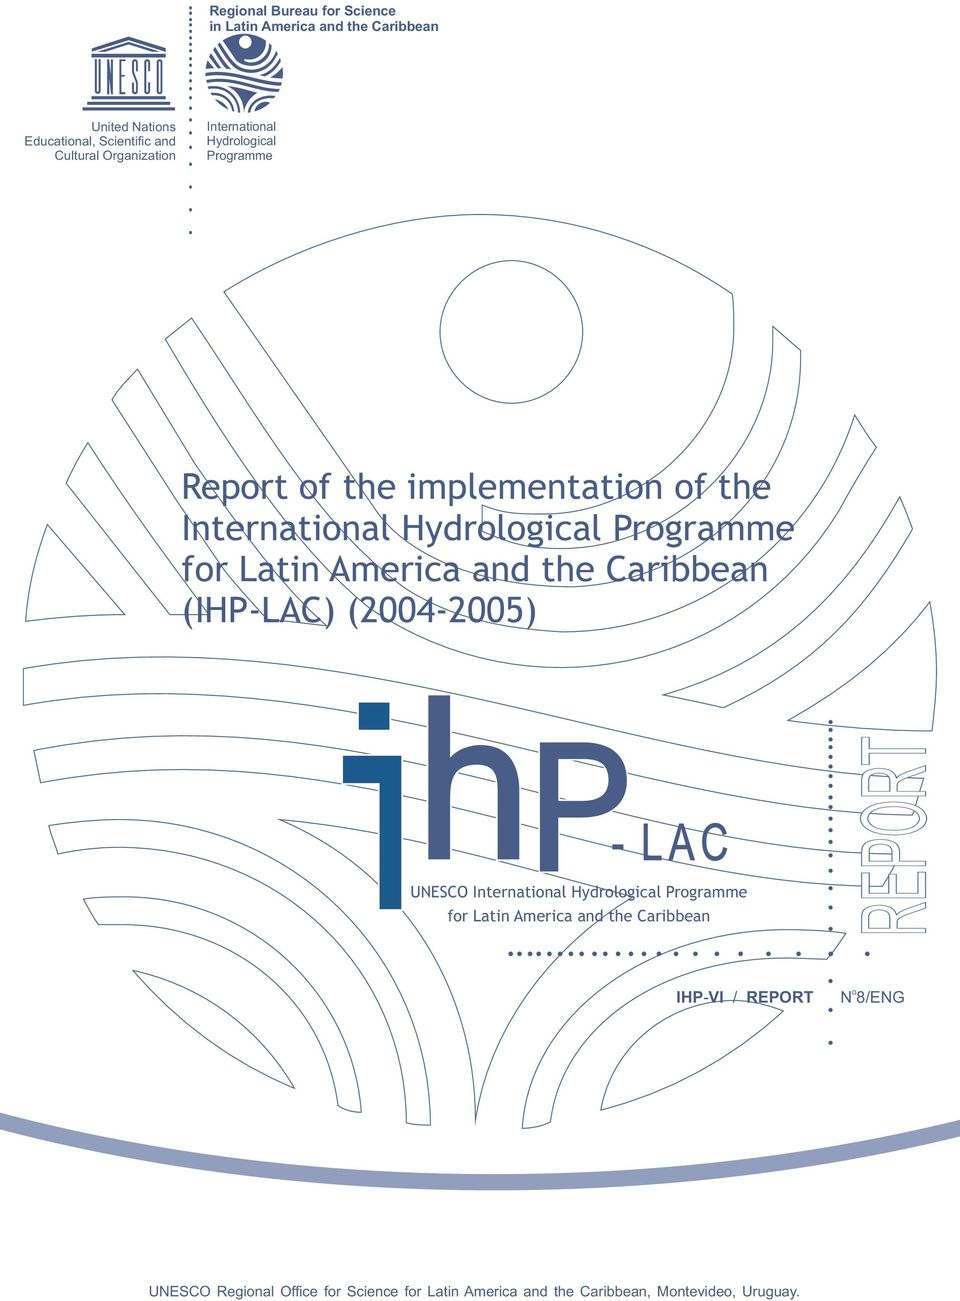 for Latin America and the Caribbean (IHP-LAC) (2004-2005) UNESCO International Hydrological Programme for Latin America and